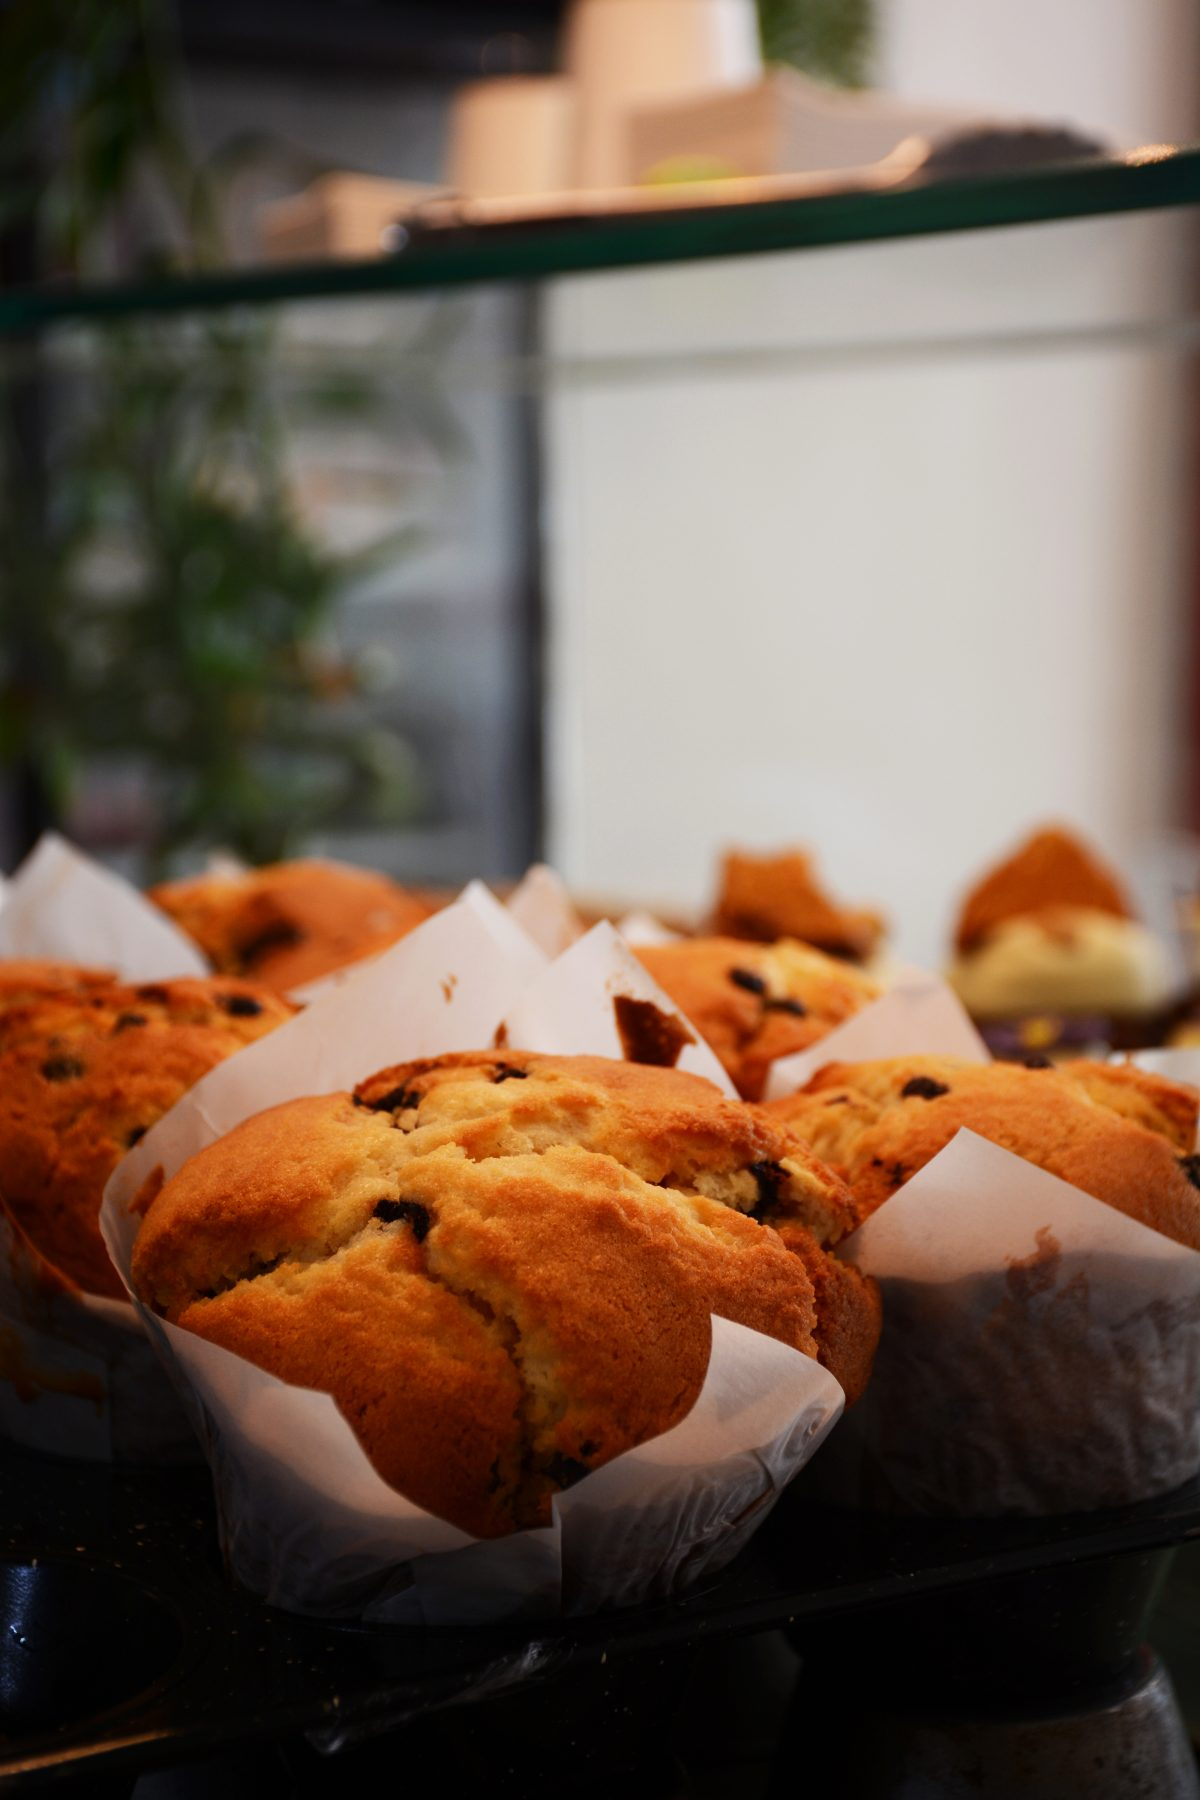 Freshly baked muffins at The Foodrinkery, Burwood (Melbourne) – a Review - thespiceadventuress.com